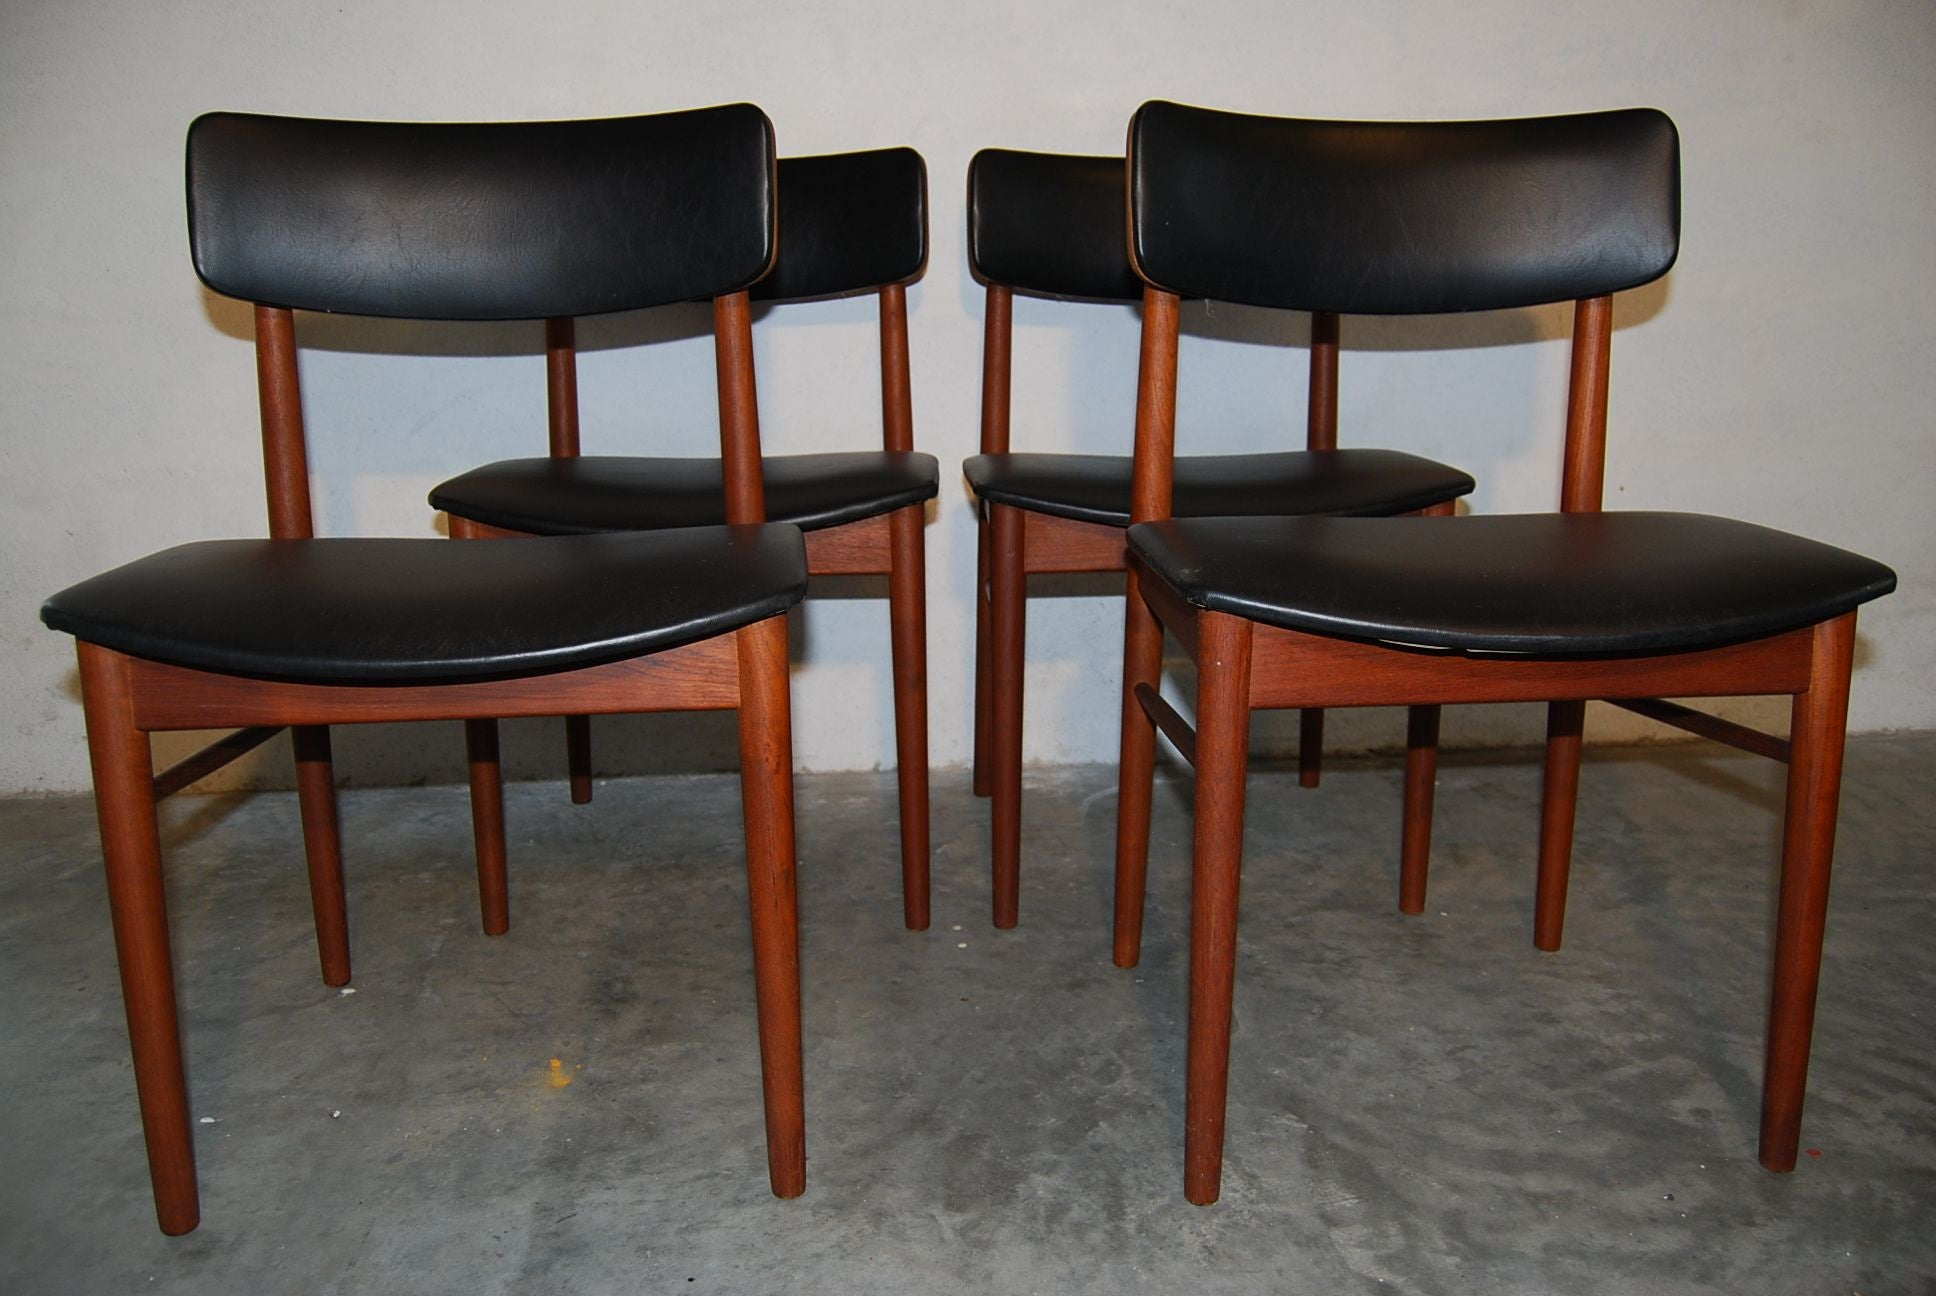 Chase & Sorensen Set of Four Dining Chairs